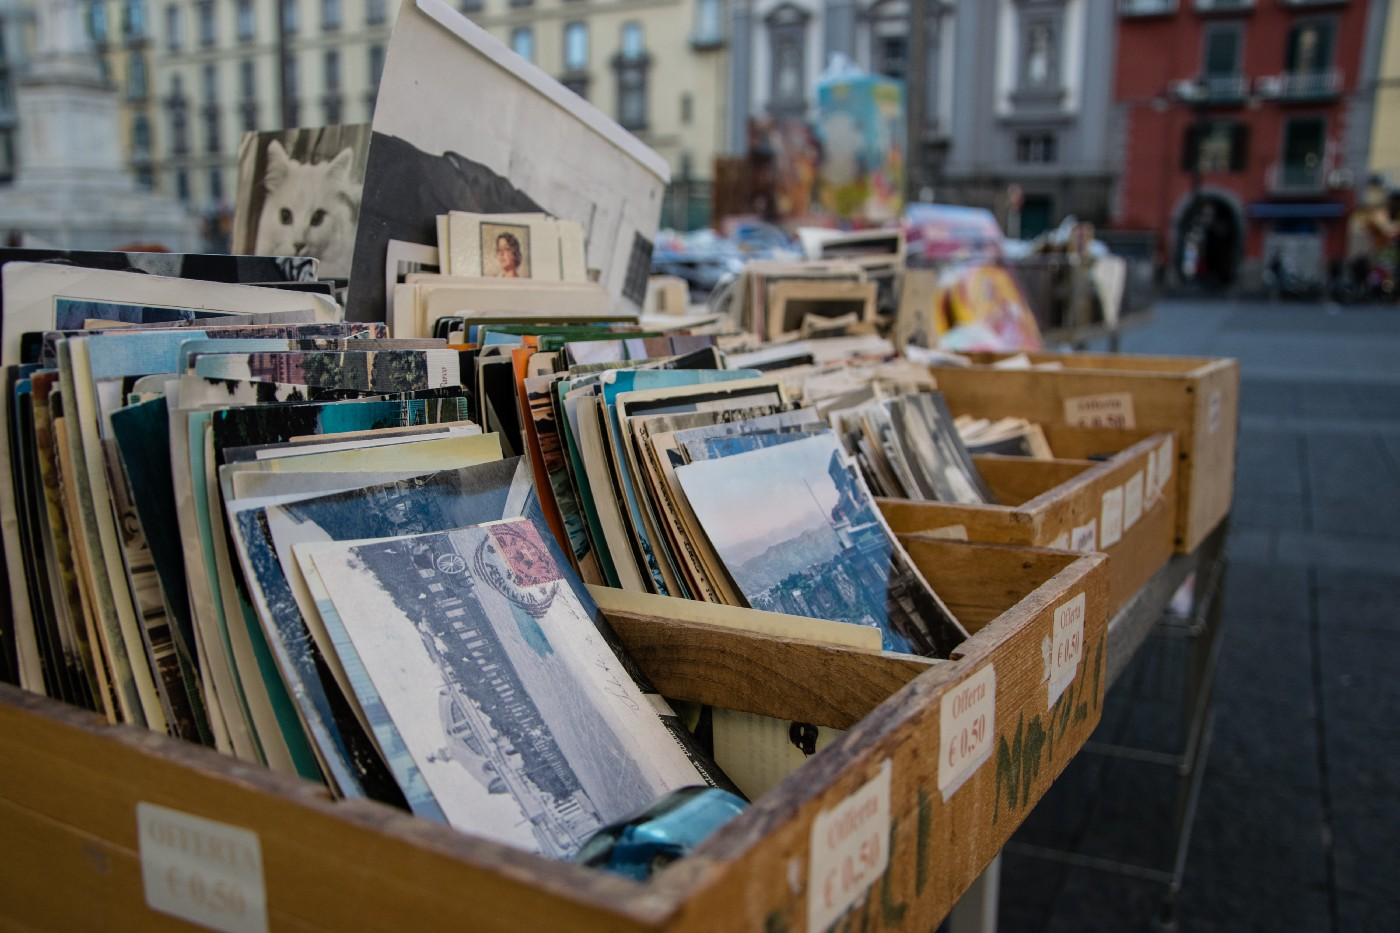 A collection of records in wooden boxes for sale.